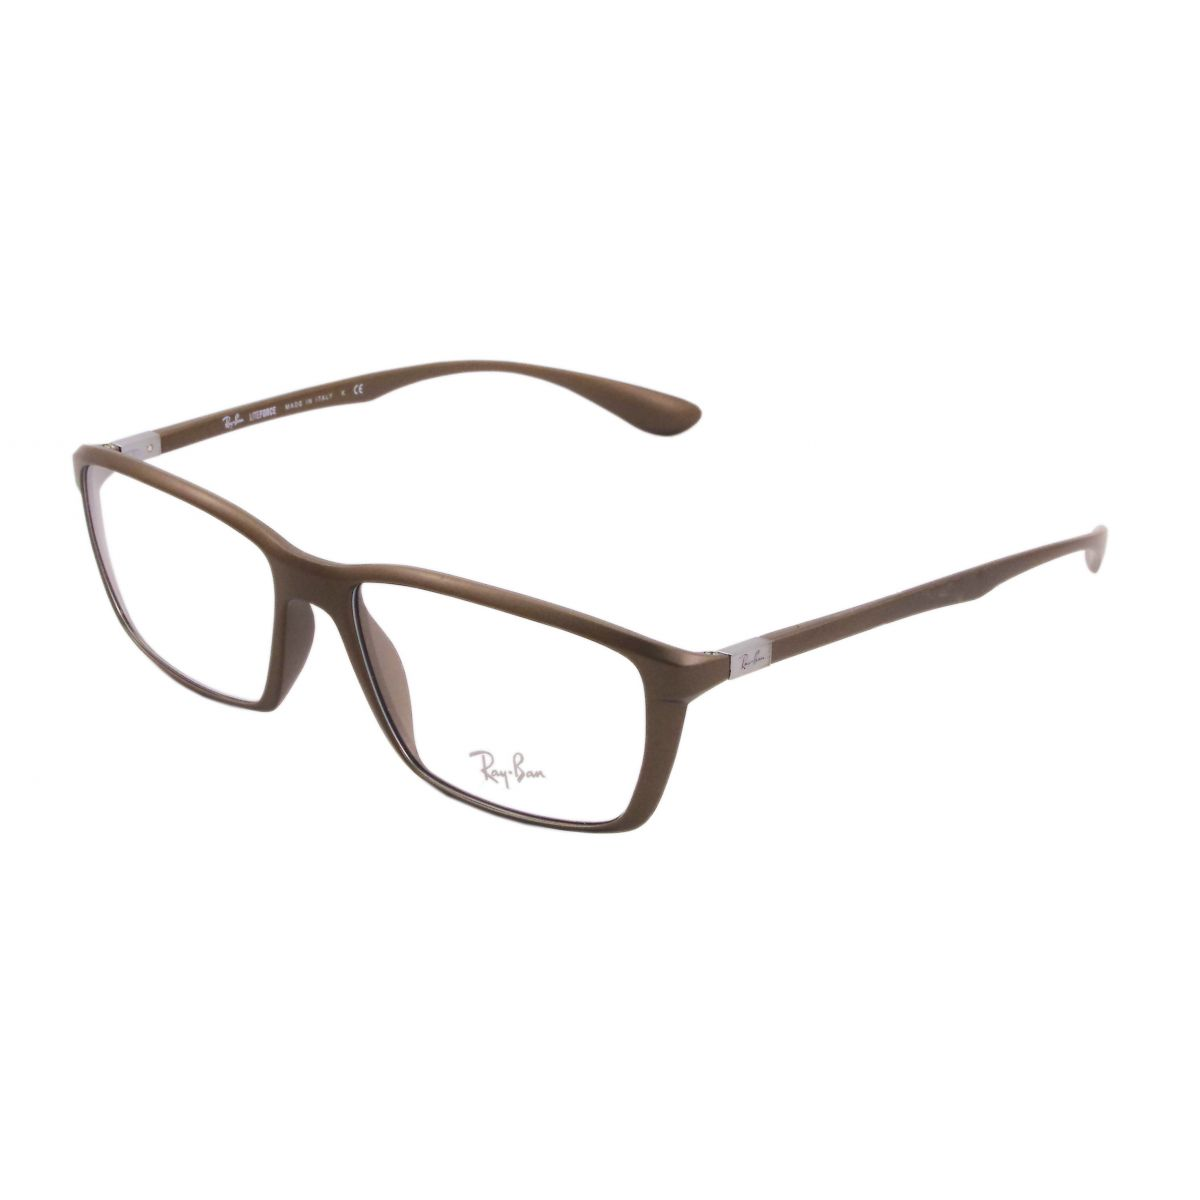 6fff49f82f796 Óculos De Grau Ray Ban Liteforce RB7018 5205 Tam.57. Image description  Image description Image description